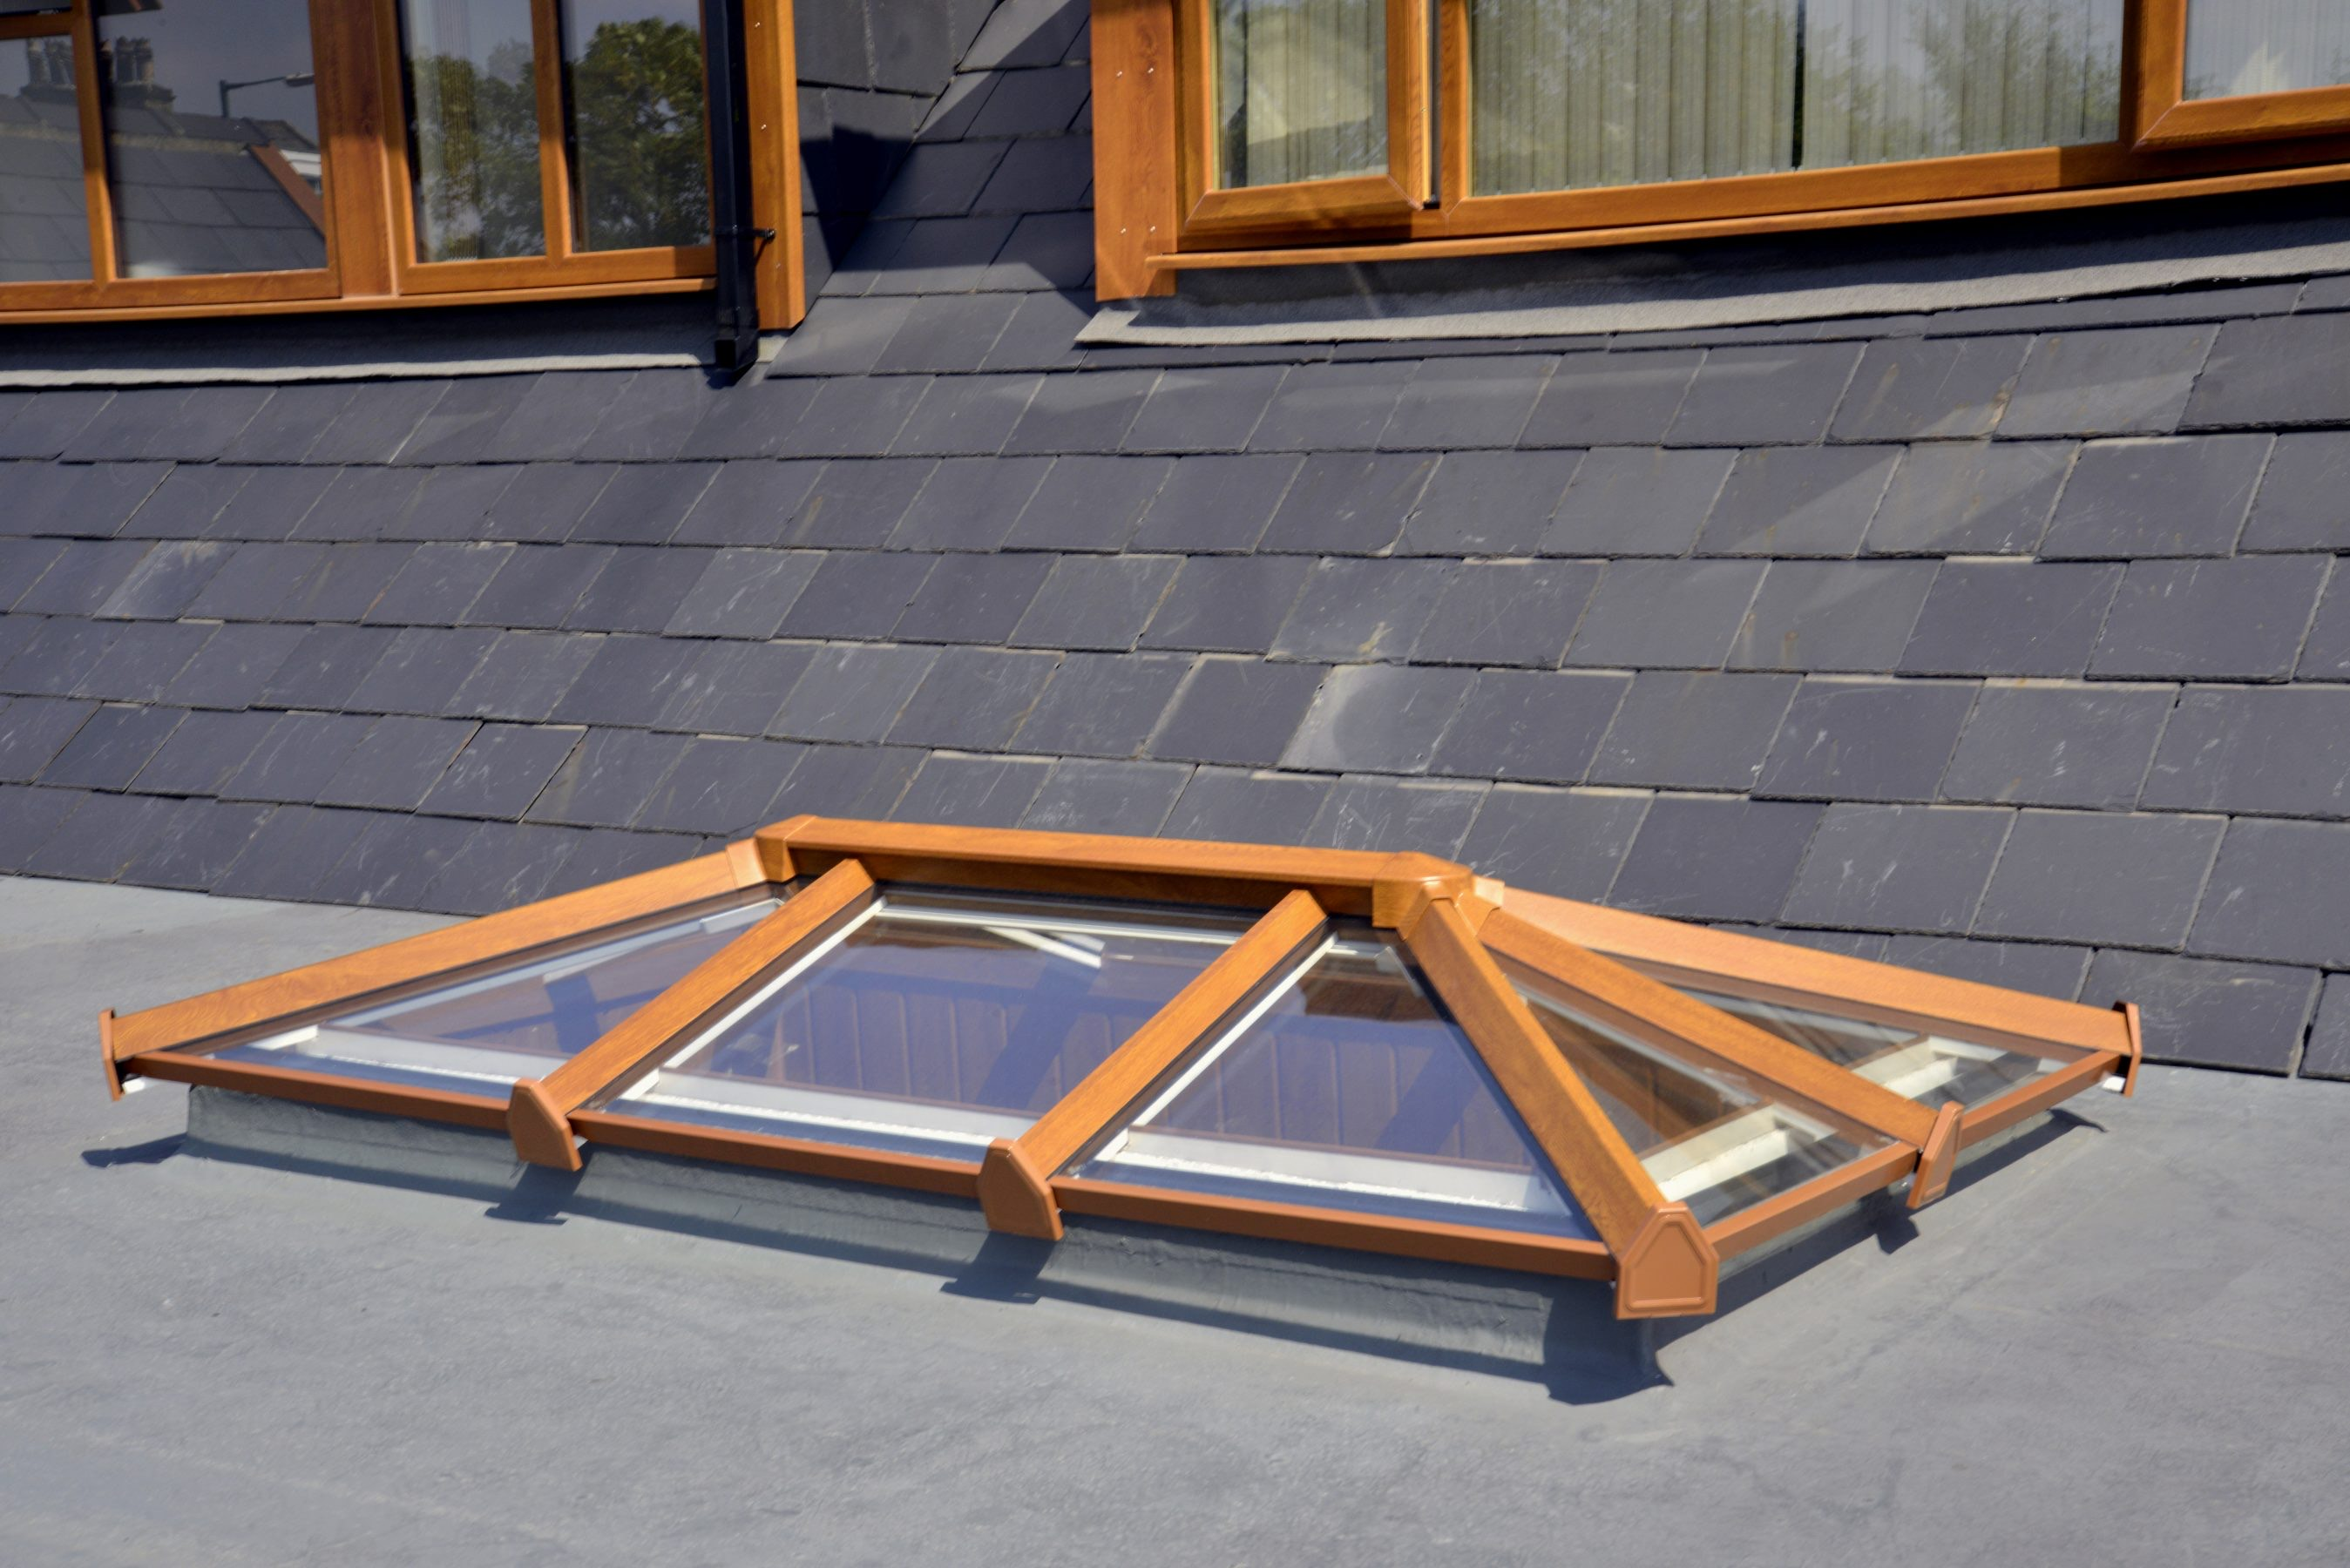 Lantern Roof Prices Fleet